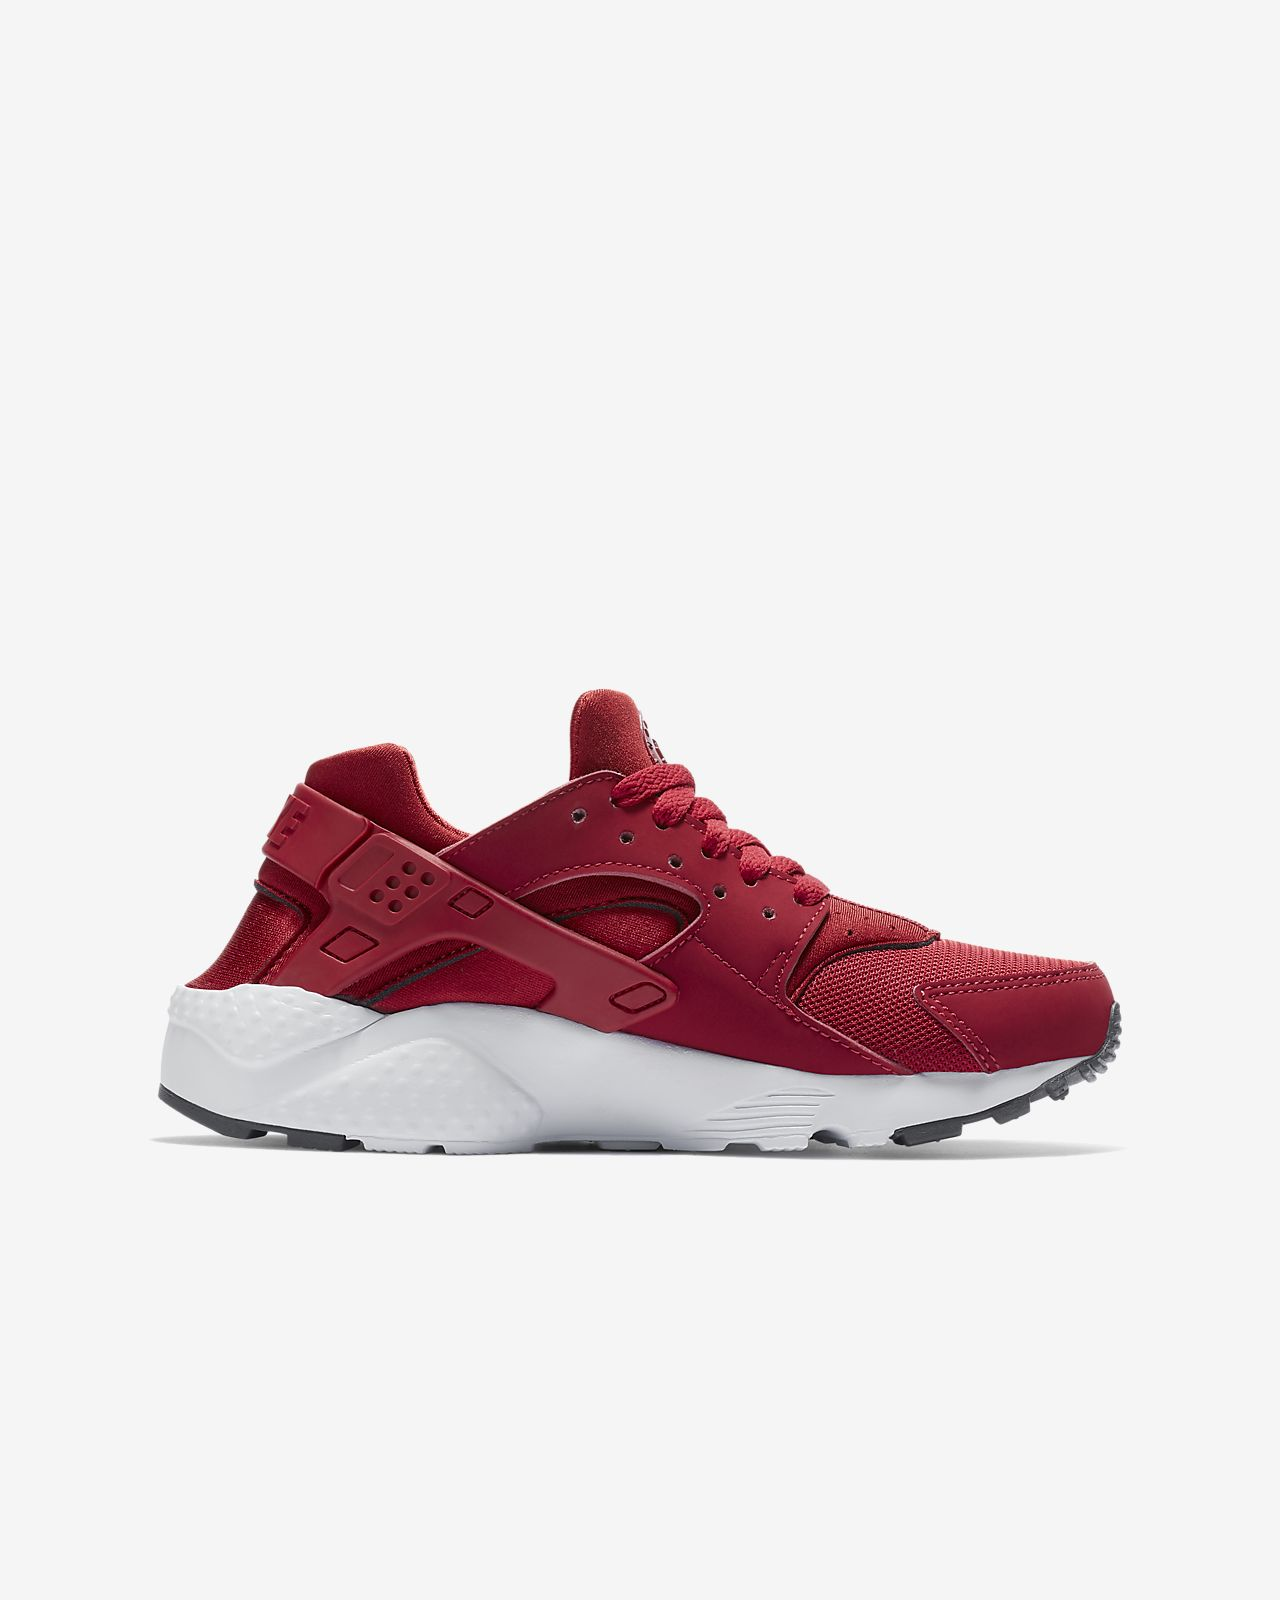 ... Nike Huarache Big Kids' Shoe